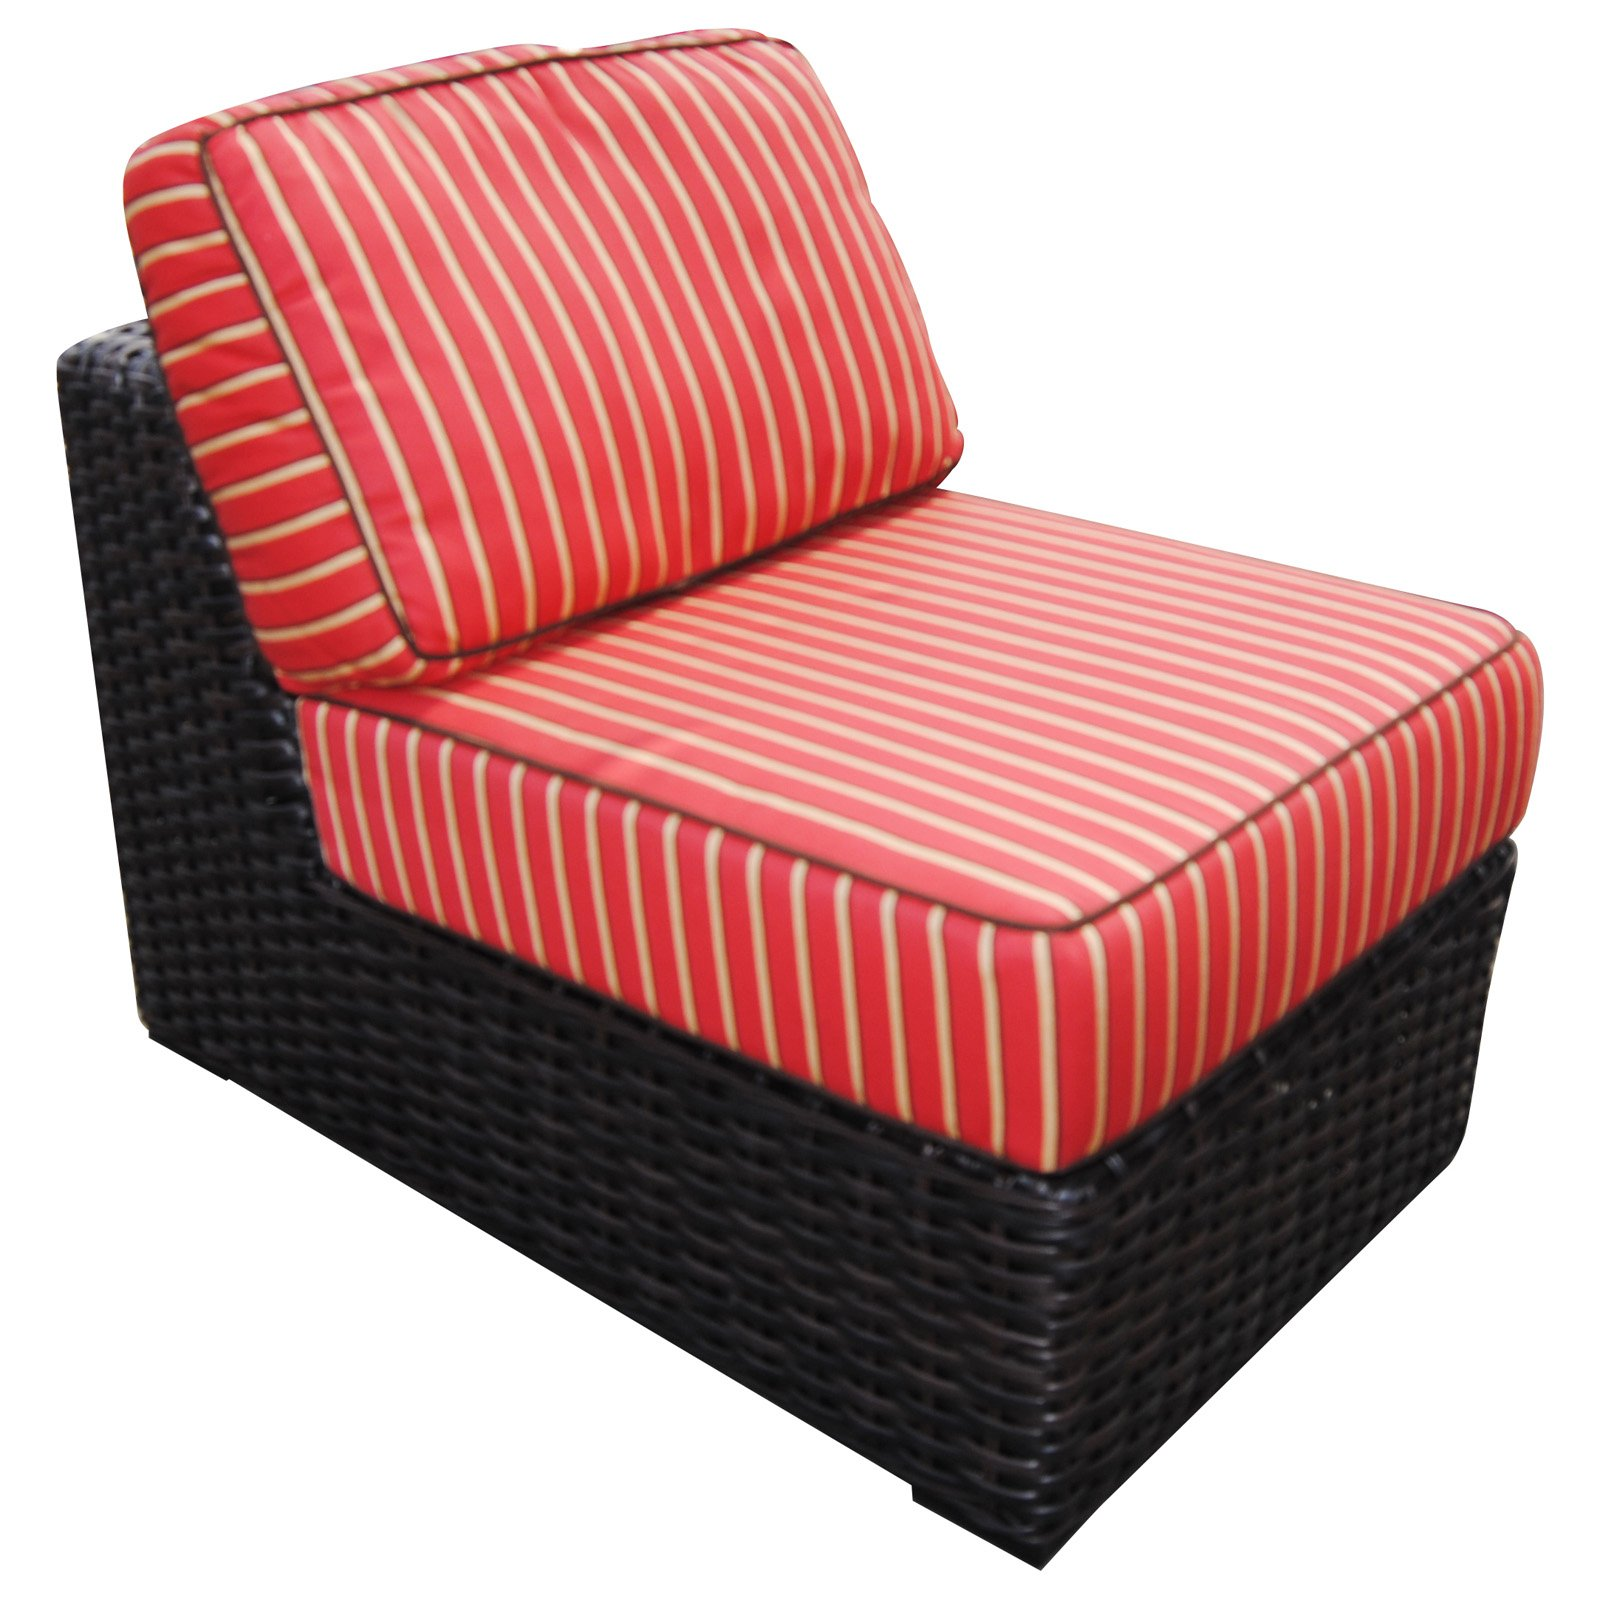 Teva Patio Santa Monica Wicker Rattan Middle of Patio Sectional